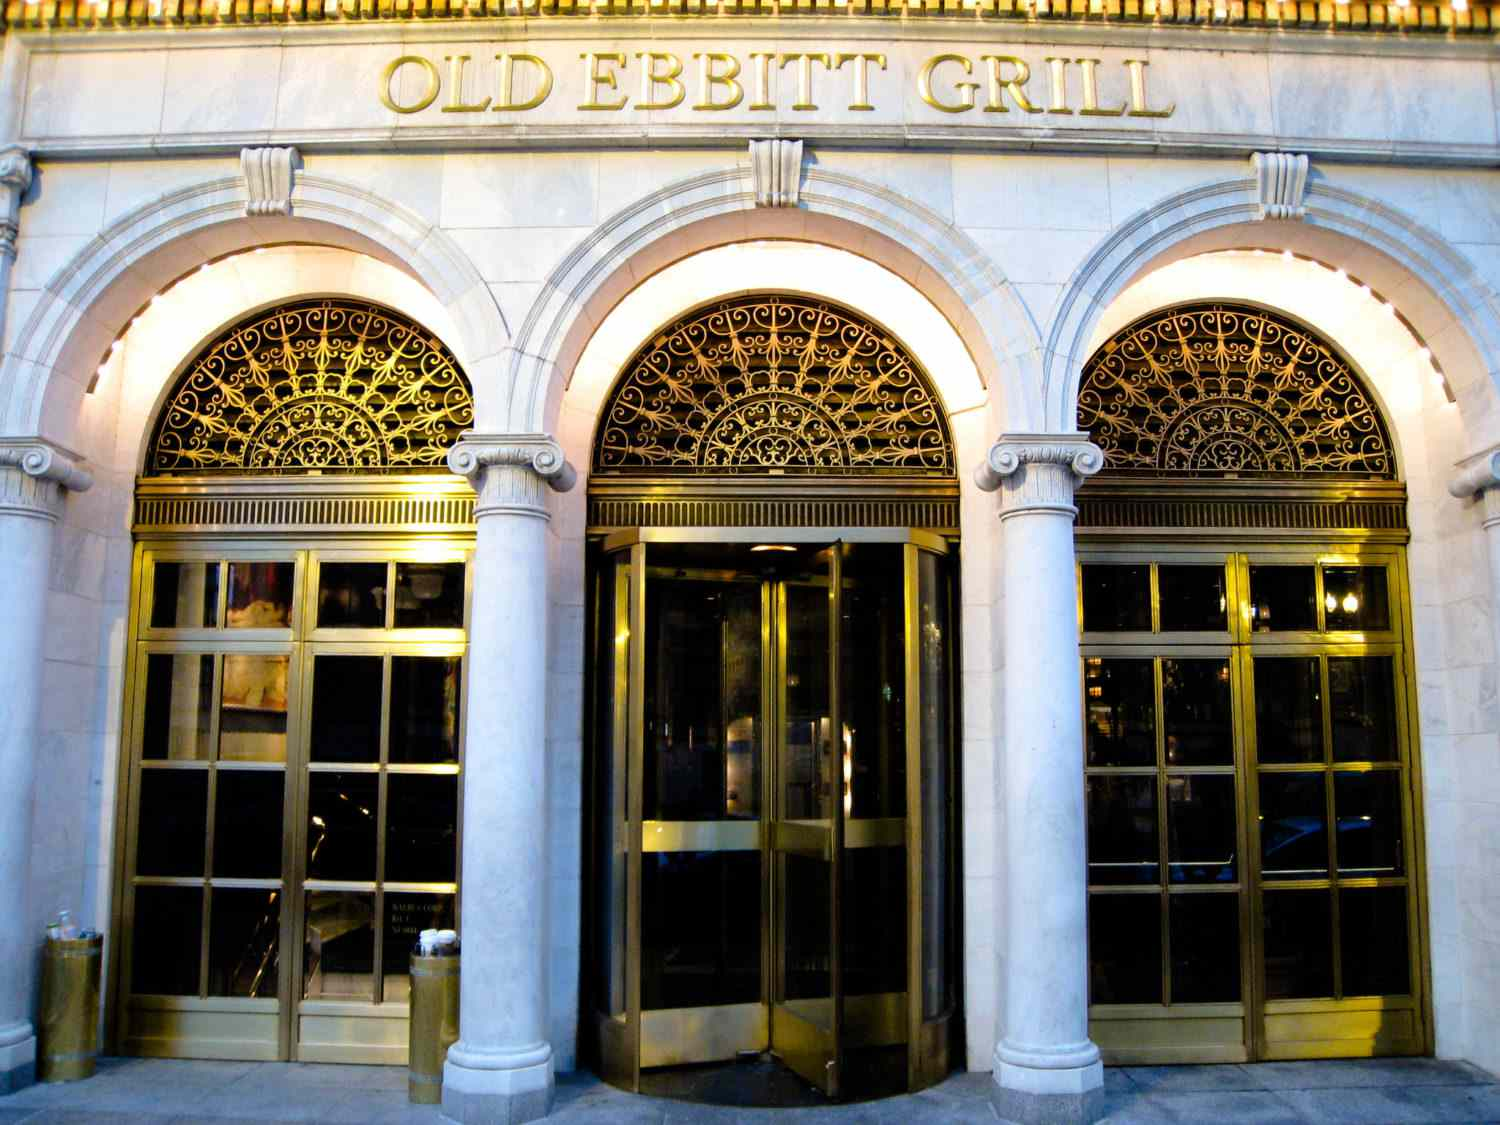 Marble arched entryway to Old Ebbitt Grill